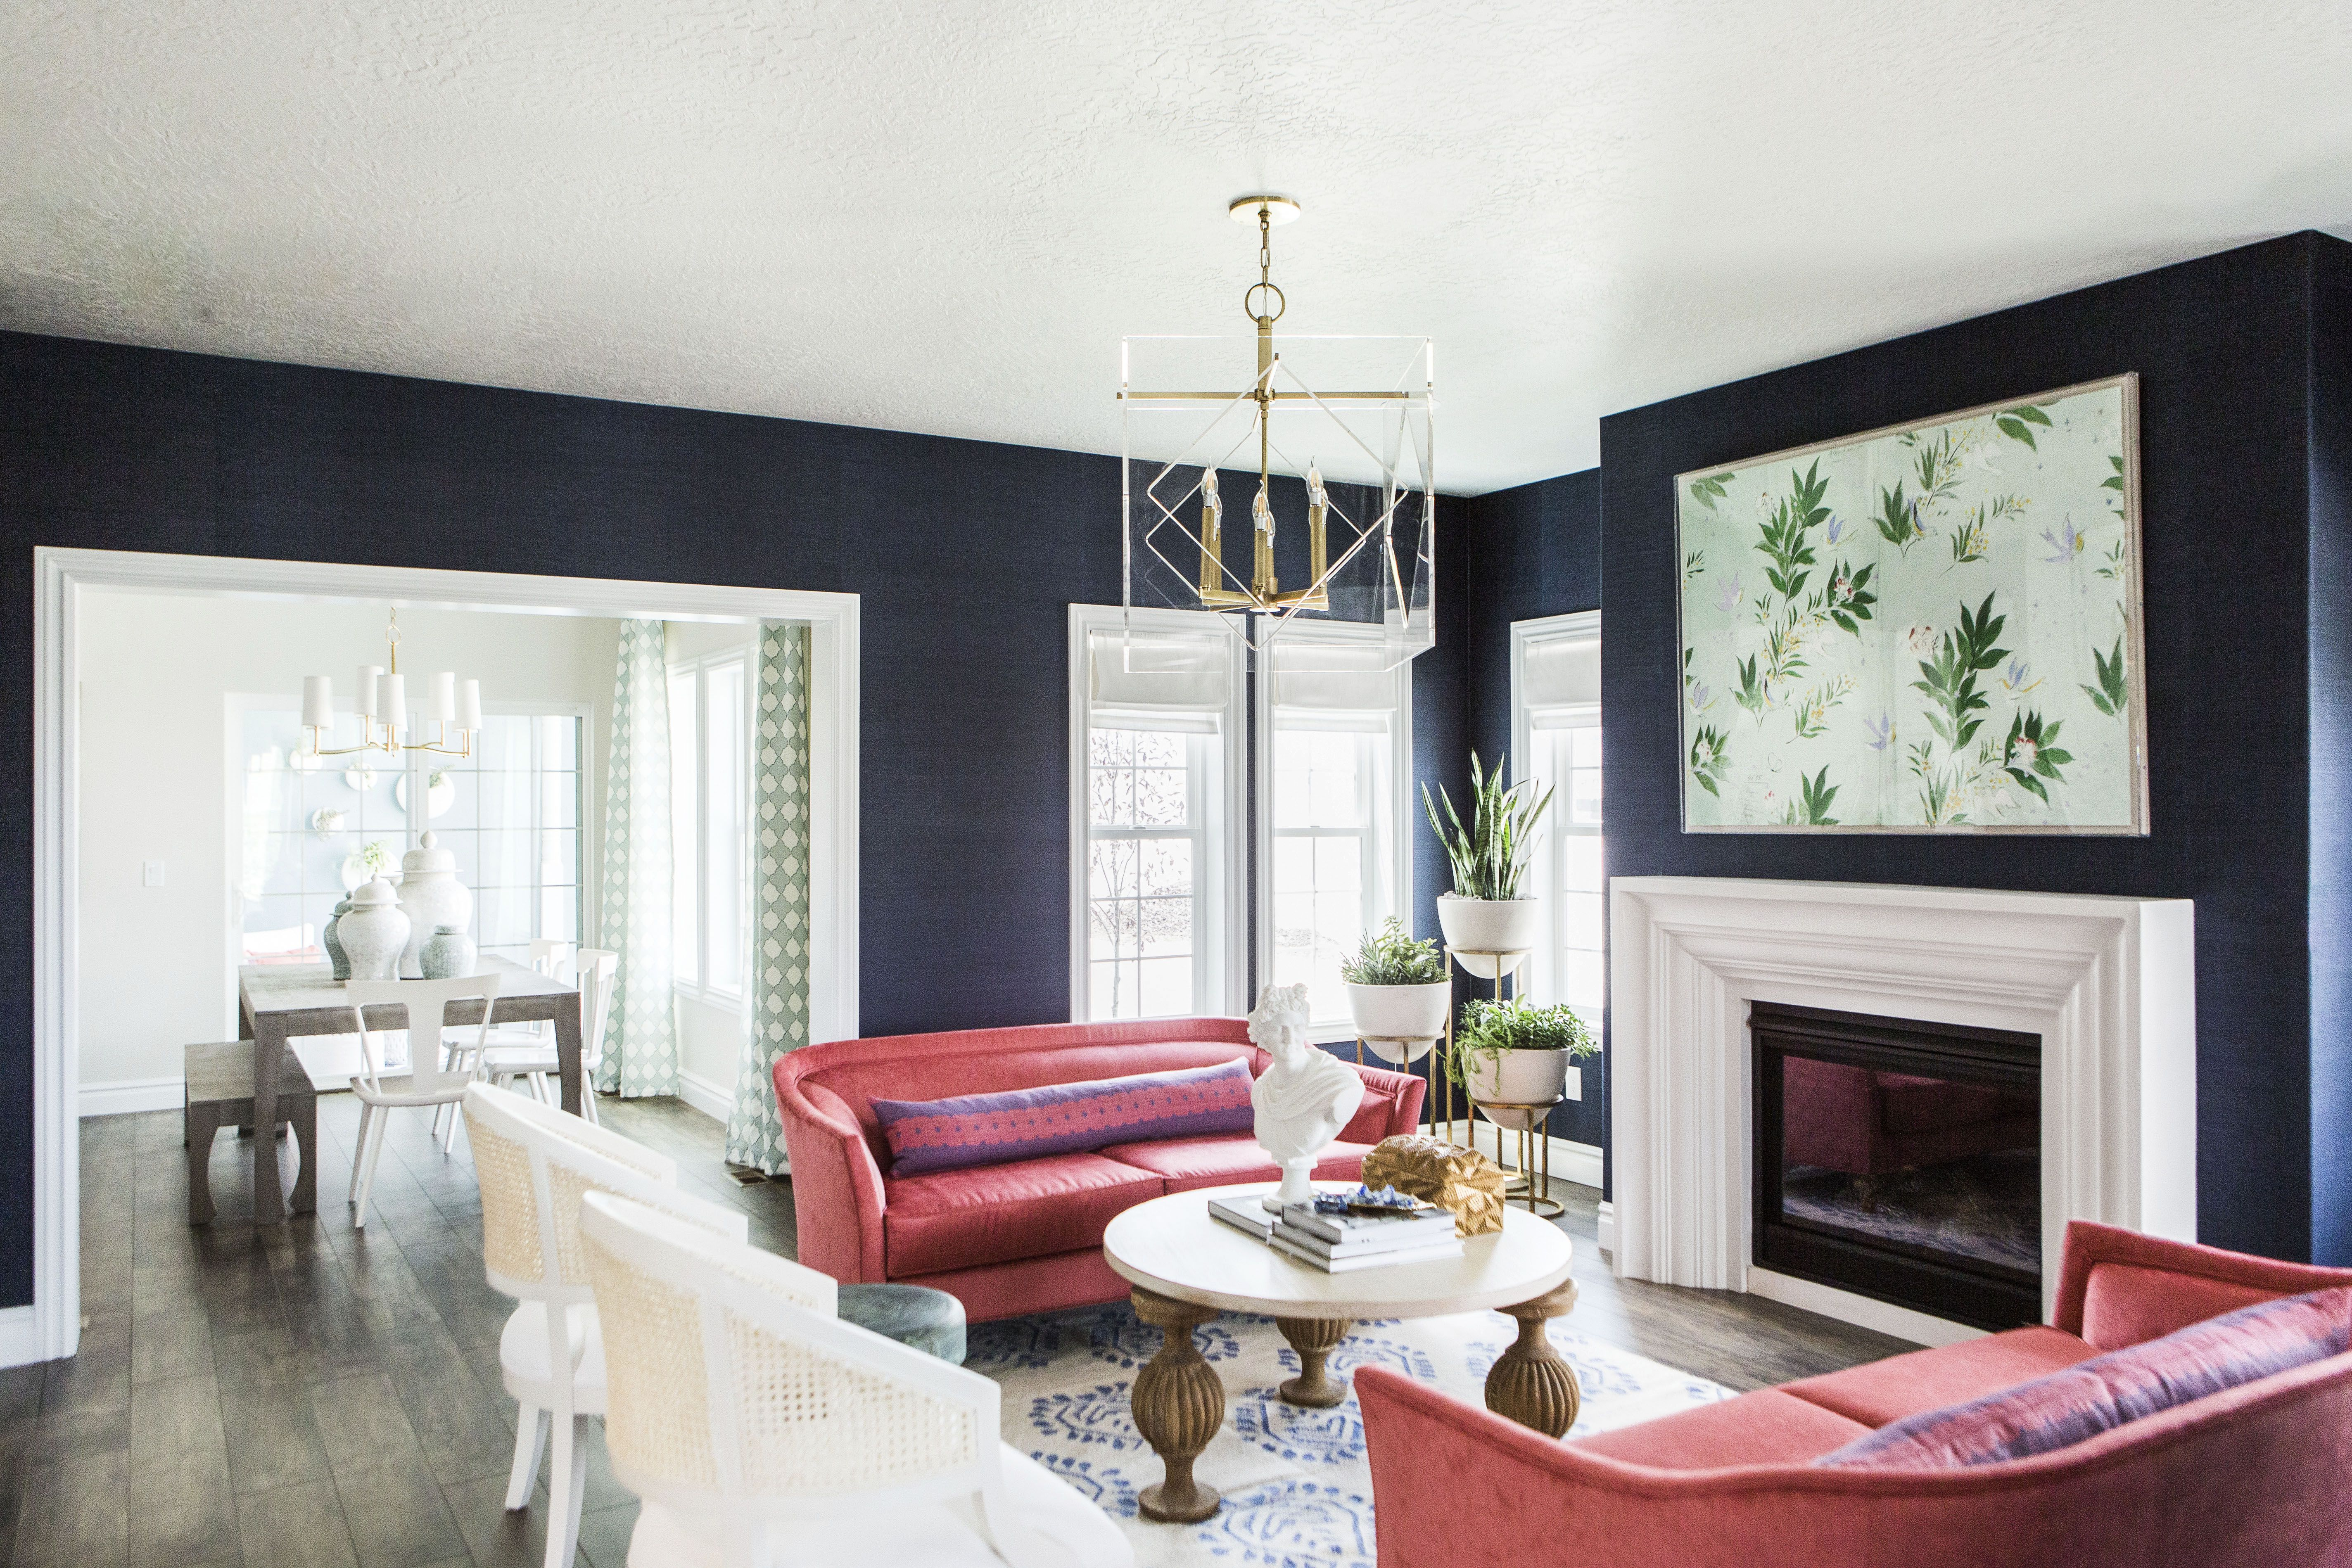 We earn a commission for products purchased through some links in this article. Lounge Designs for a Perfect Living Room - CareHomeDecor